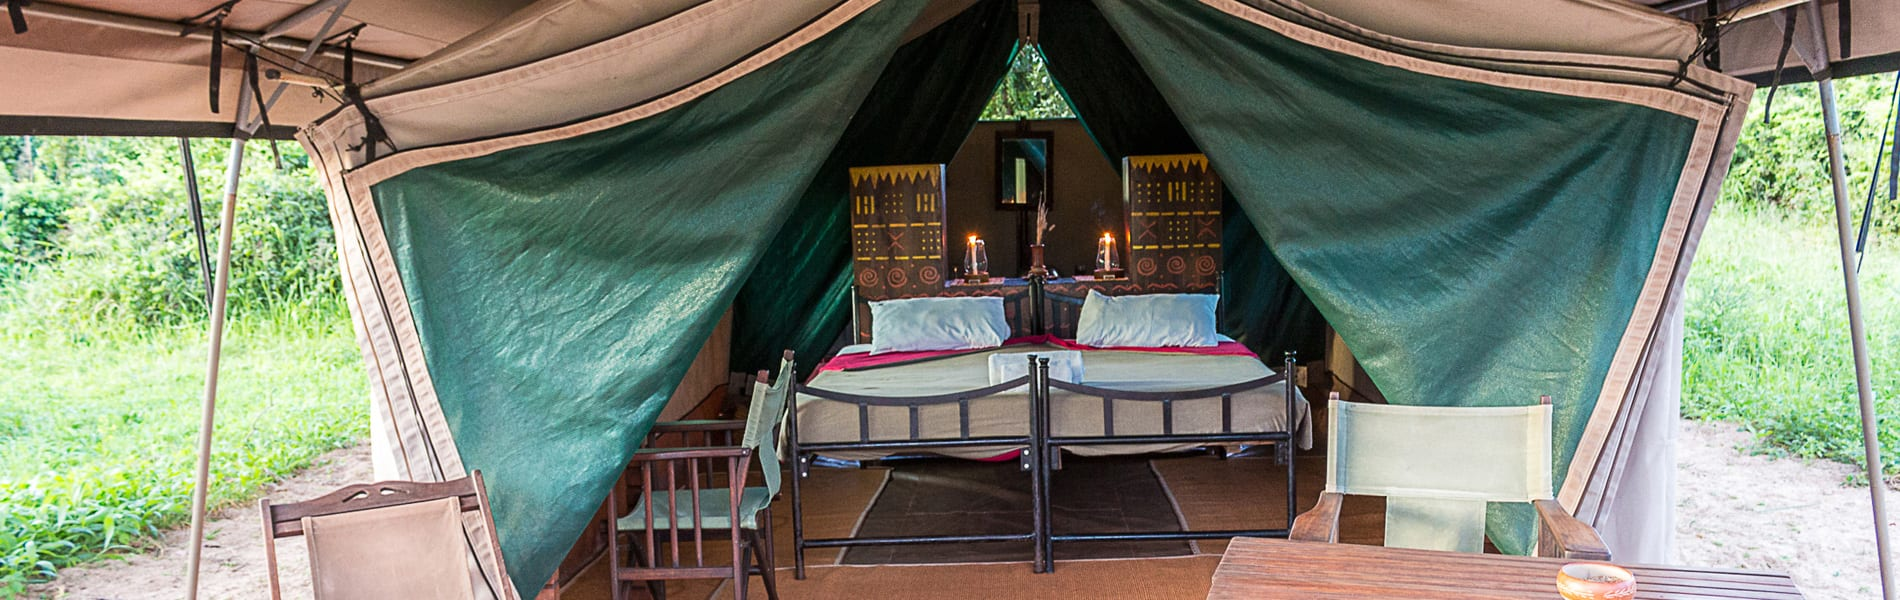 Lake Manze Tented Camp tent front